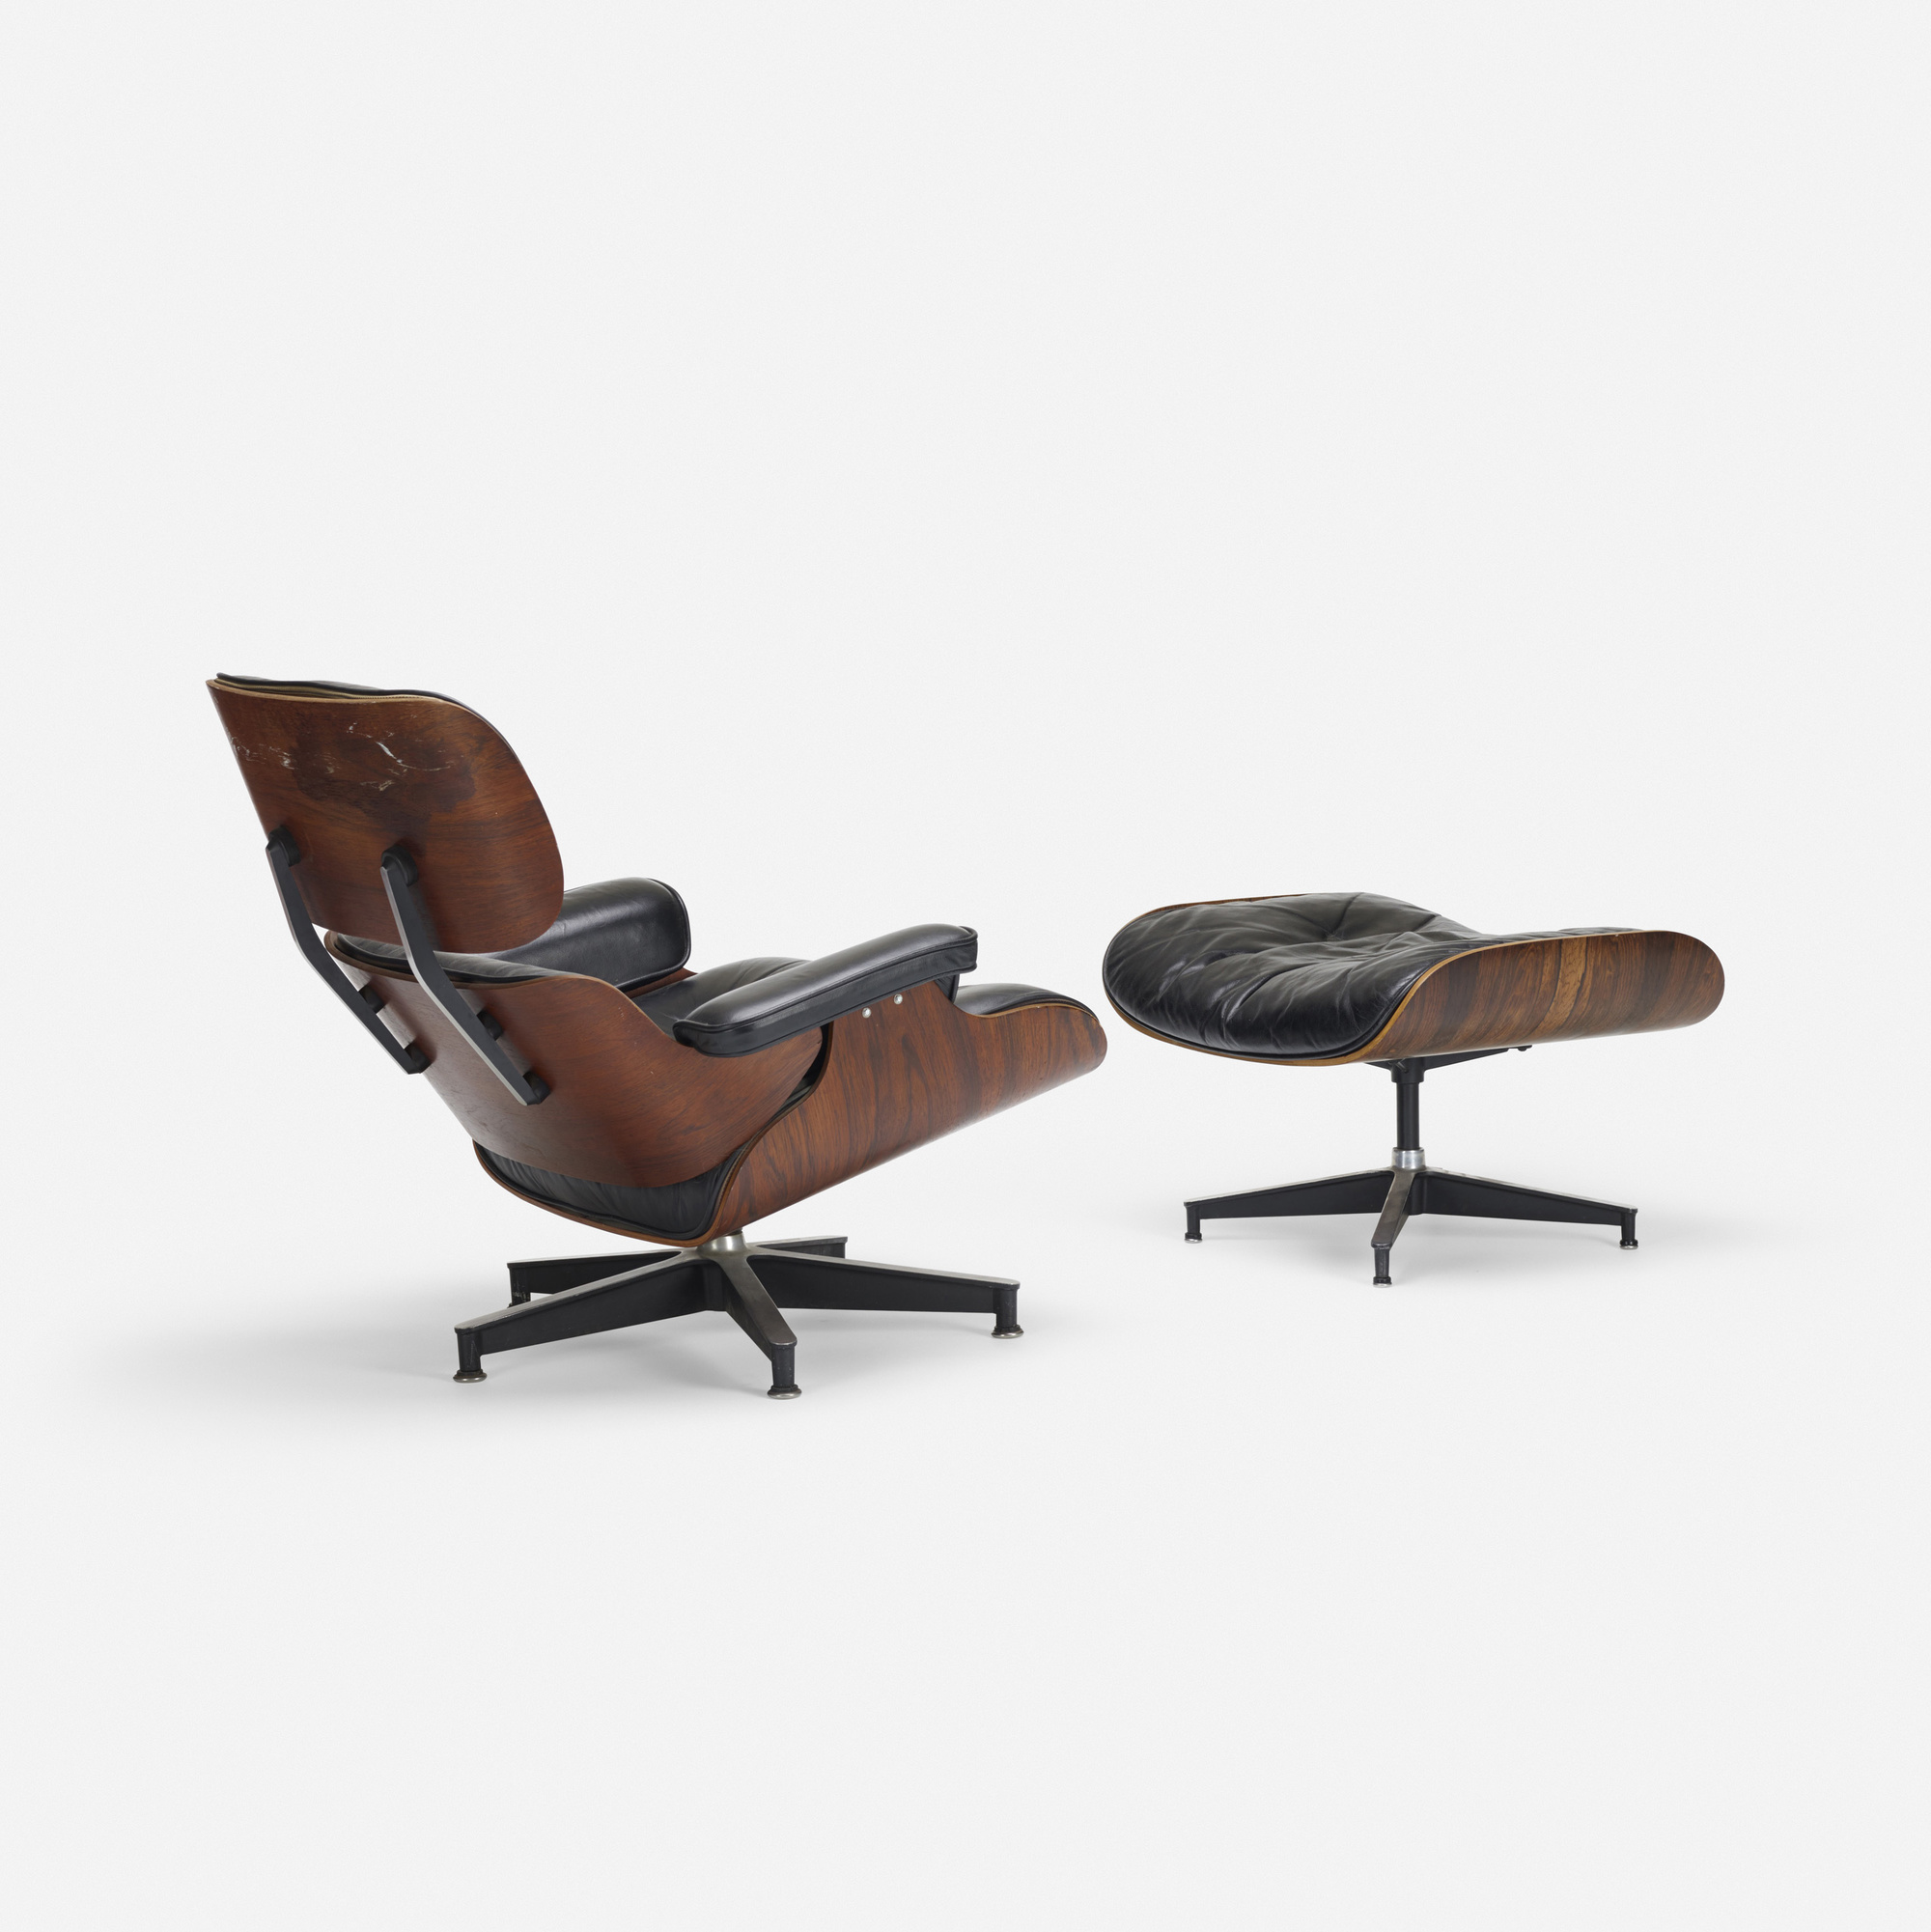 251: Charles and Ray Eames / 670 lounge chair and 671 ottoman (1 of 2)